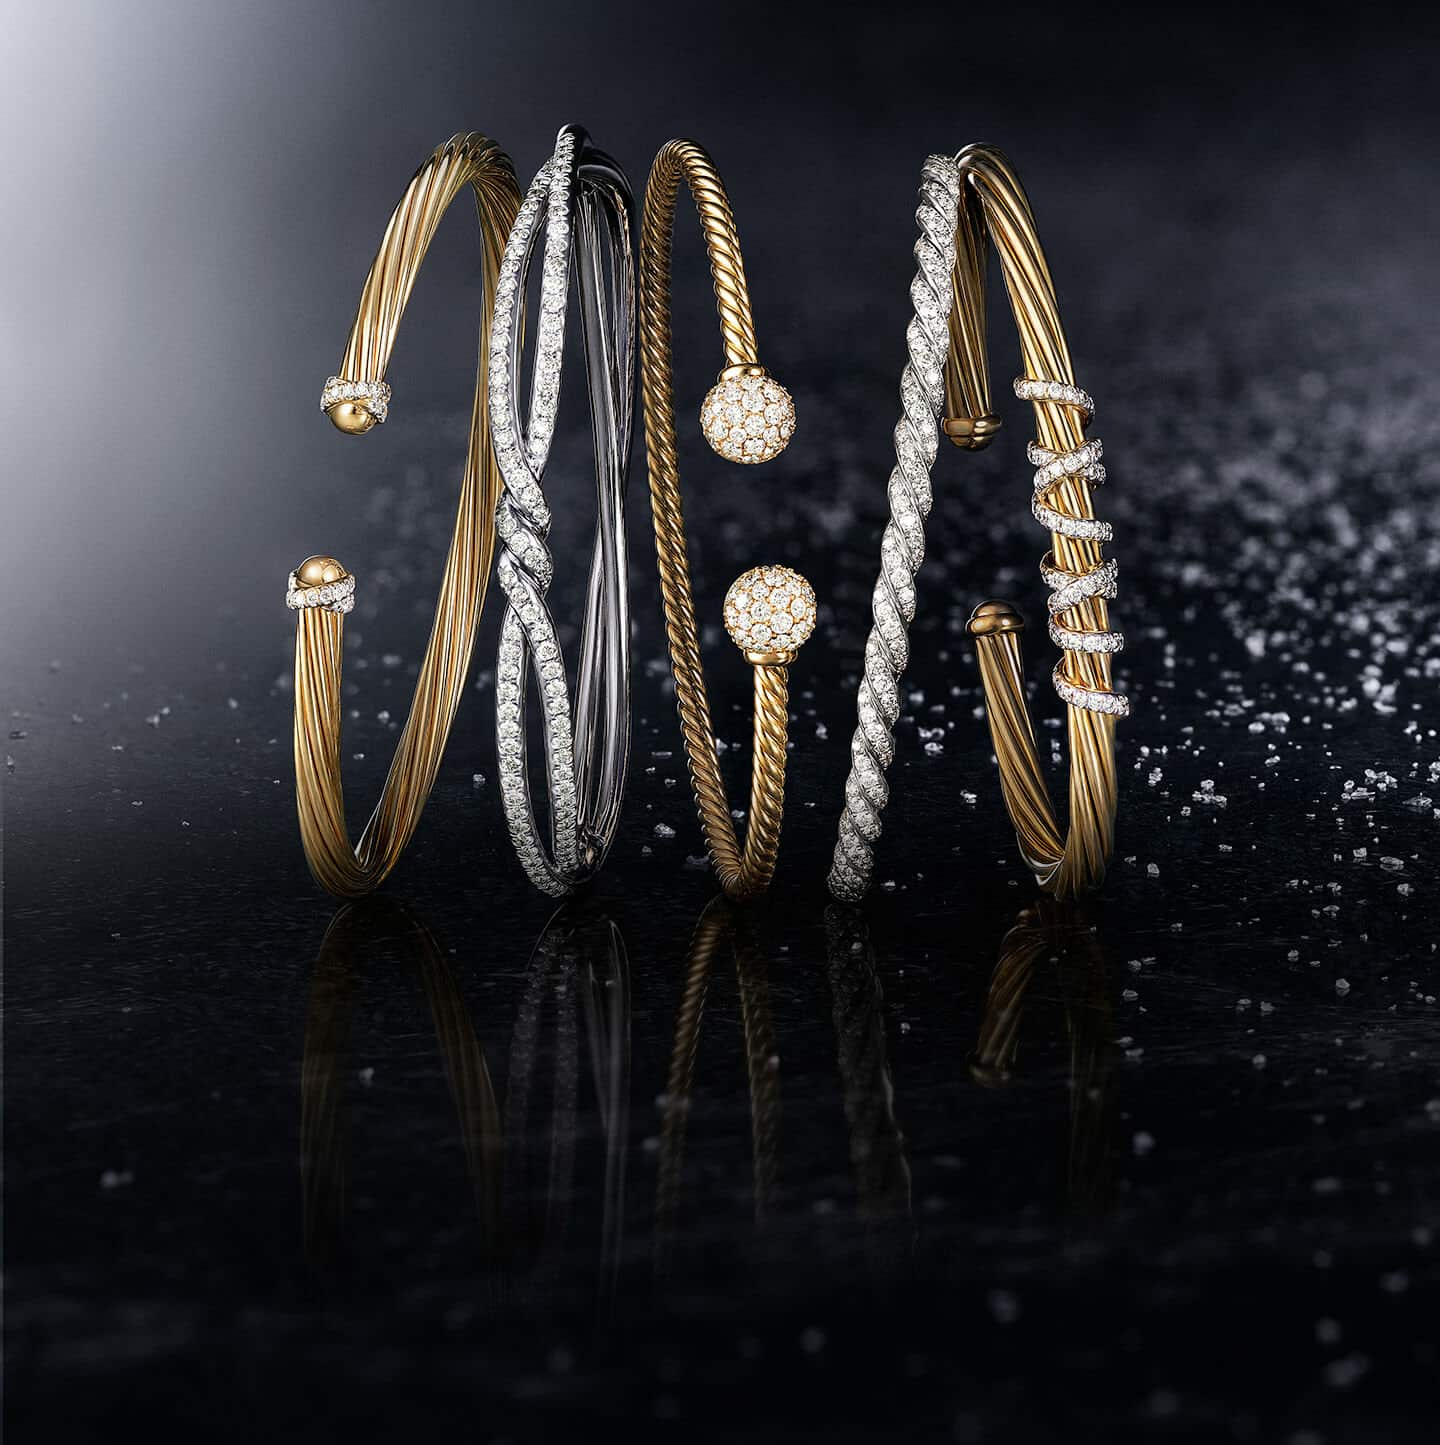 A color photo shows a horizontal stack of five David Yurman bracelets from the Helena, Continuance, Solari and Pavéflex collections leaning against each other on a black surface lightly dusted with snowflakes. The women's jewelry is crafted from 18K yellow gold with pavé white diamonds or 18K white gold with pavé white diamonds.